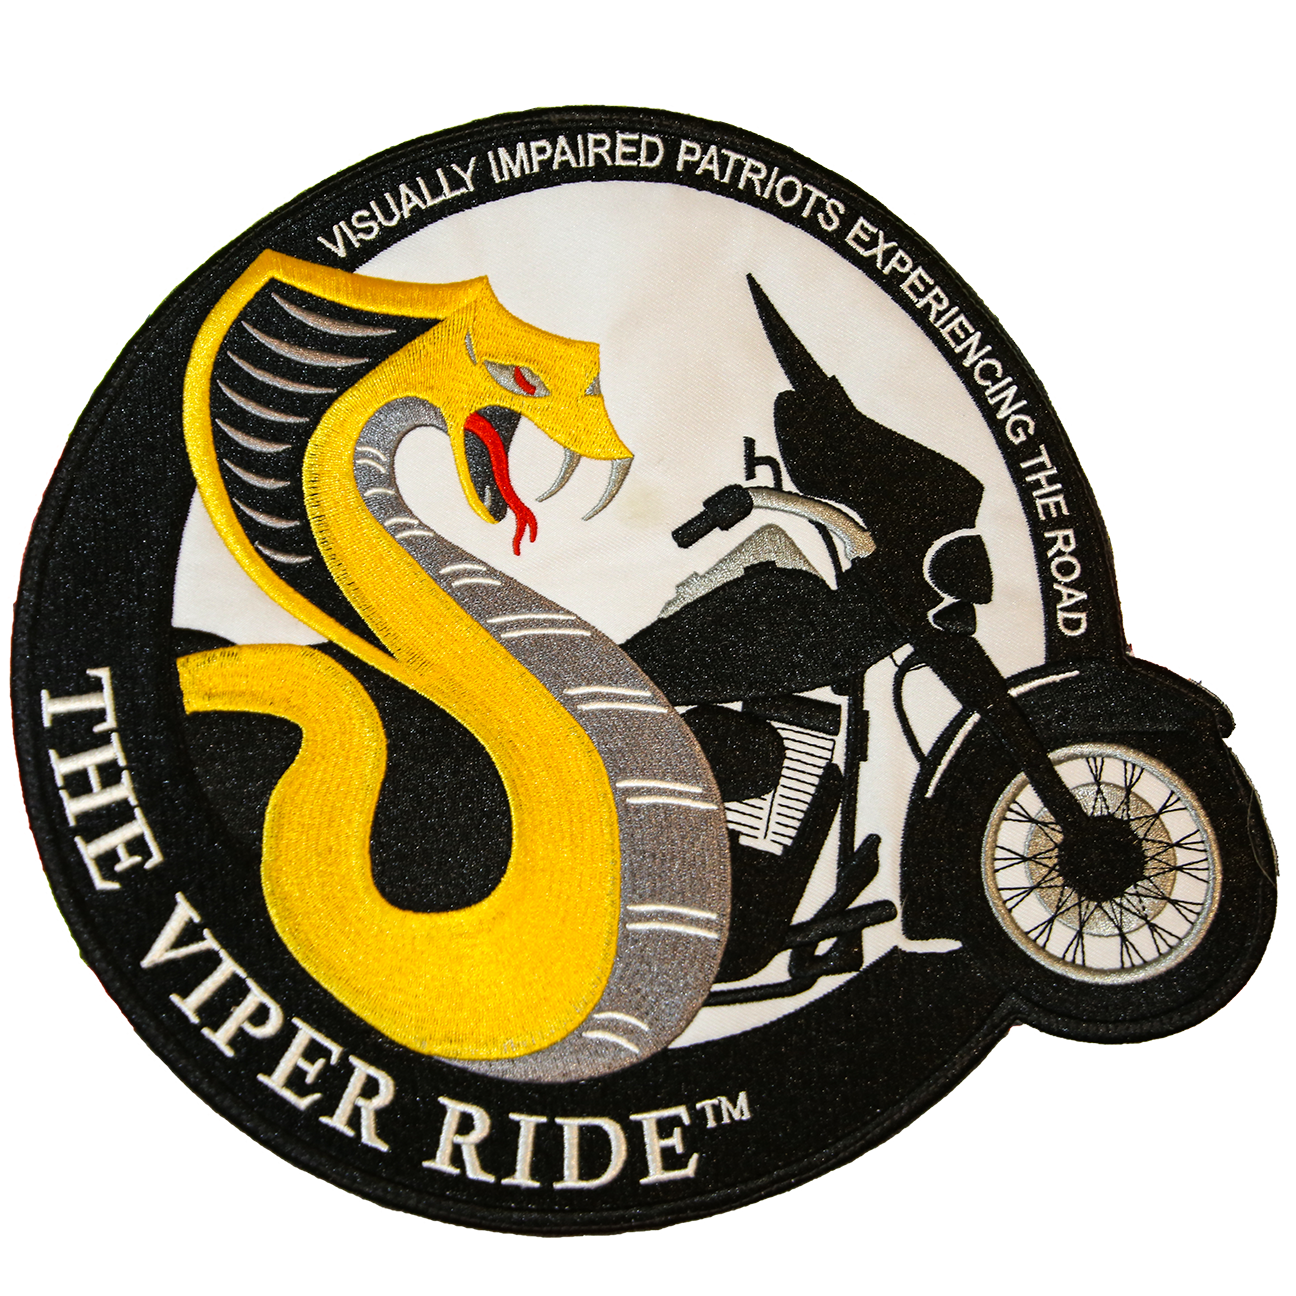 VIPER RIDE PATCH (LARGE 9 1/2 in. x 9 1/2 in.)